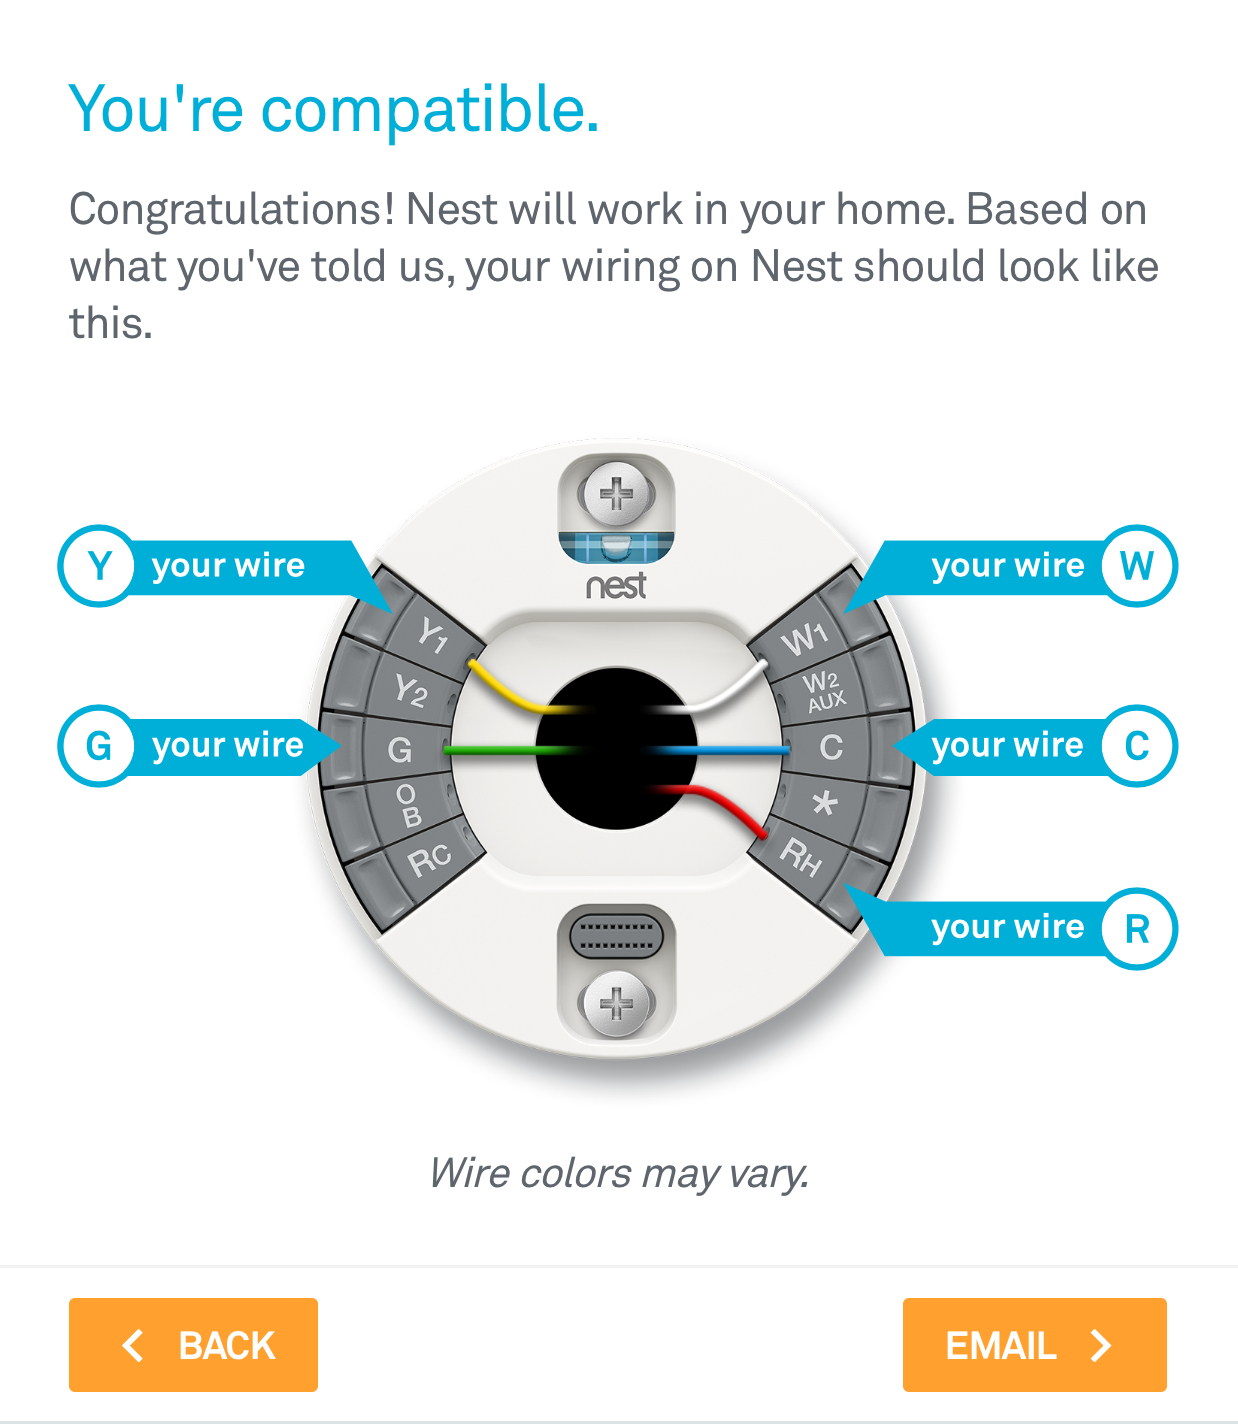 How To: Install The Nest Thermostat | The Craftsman Blog - Nest Compatbilty Wiring Diagram